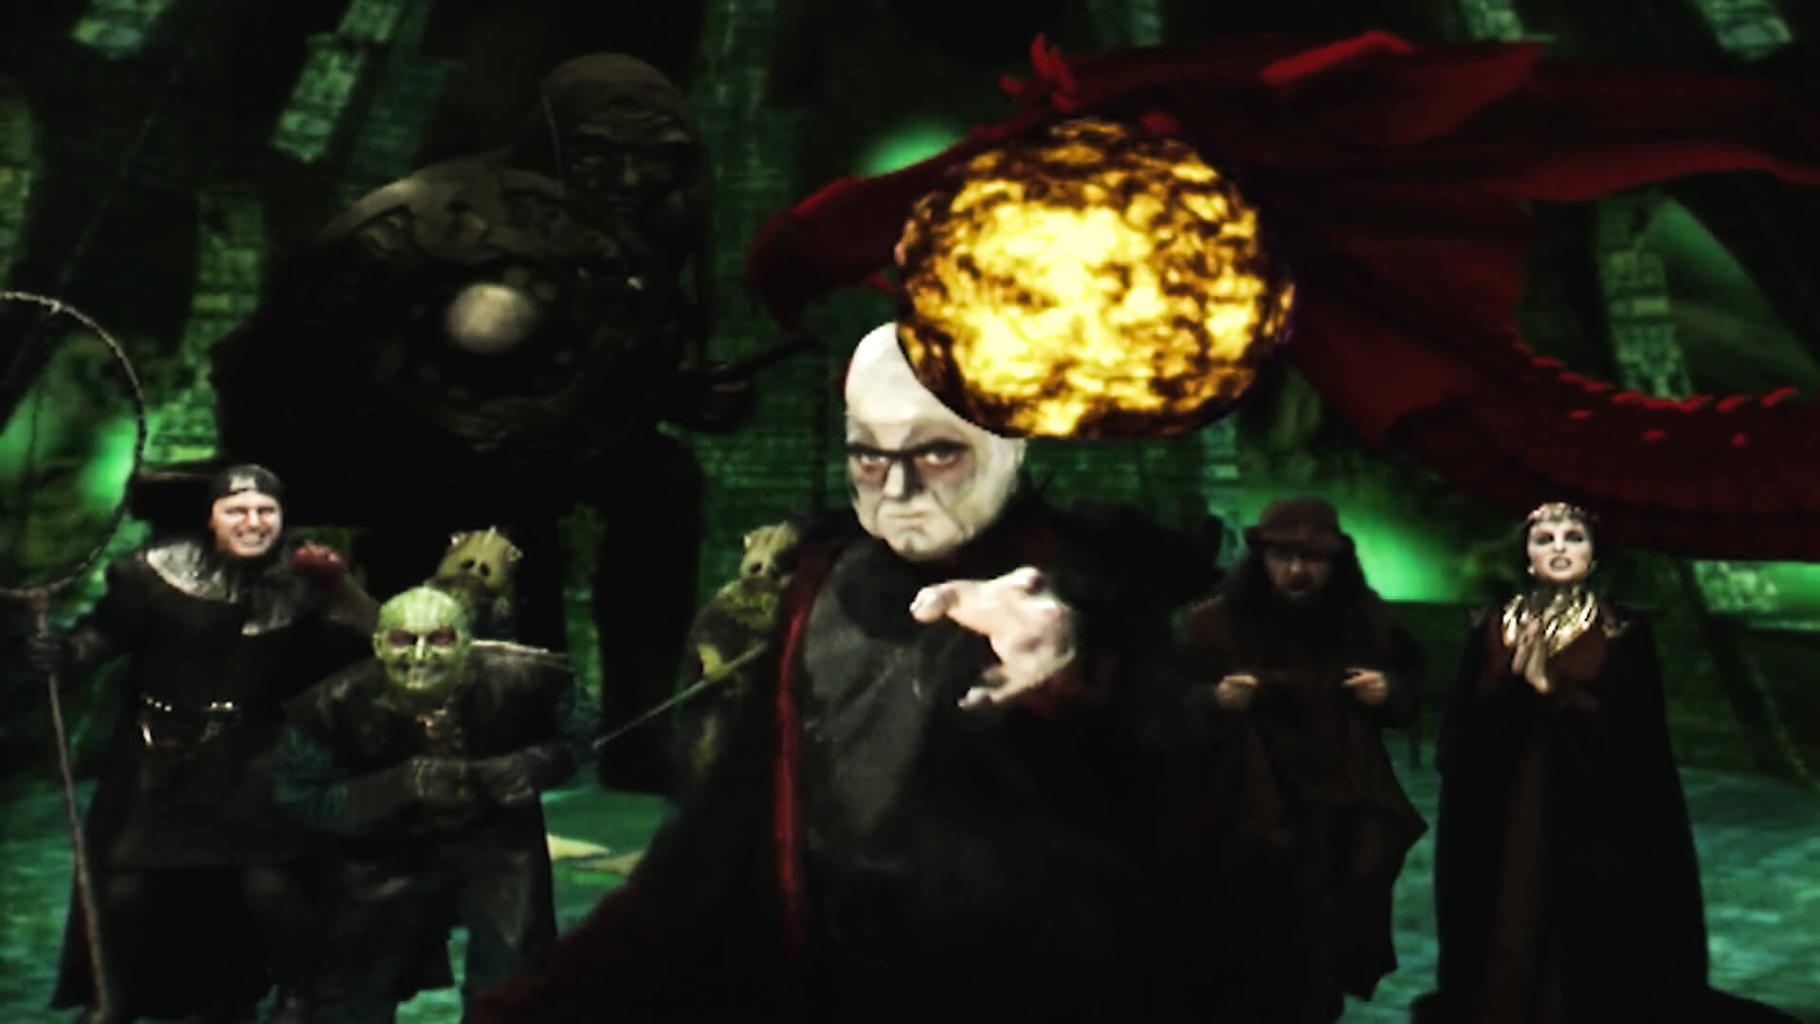 Knightmare Series 8 Opposition cast. Lord Fear throws a fireball as part of the opening sequence.